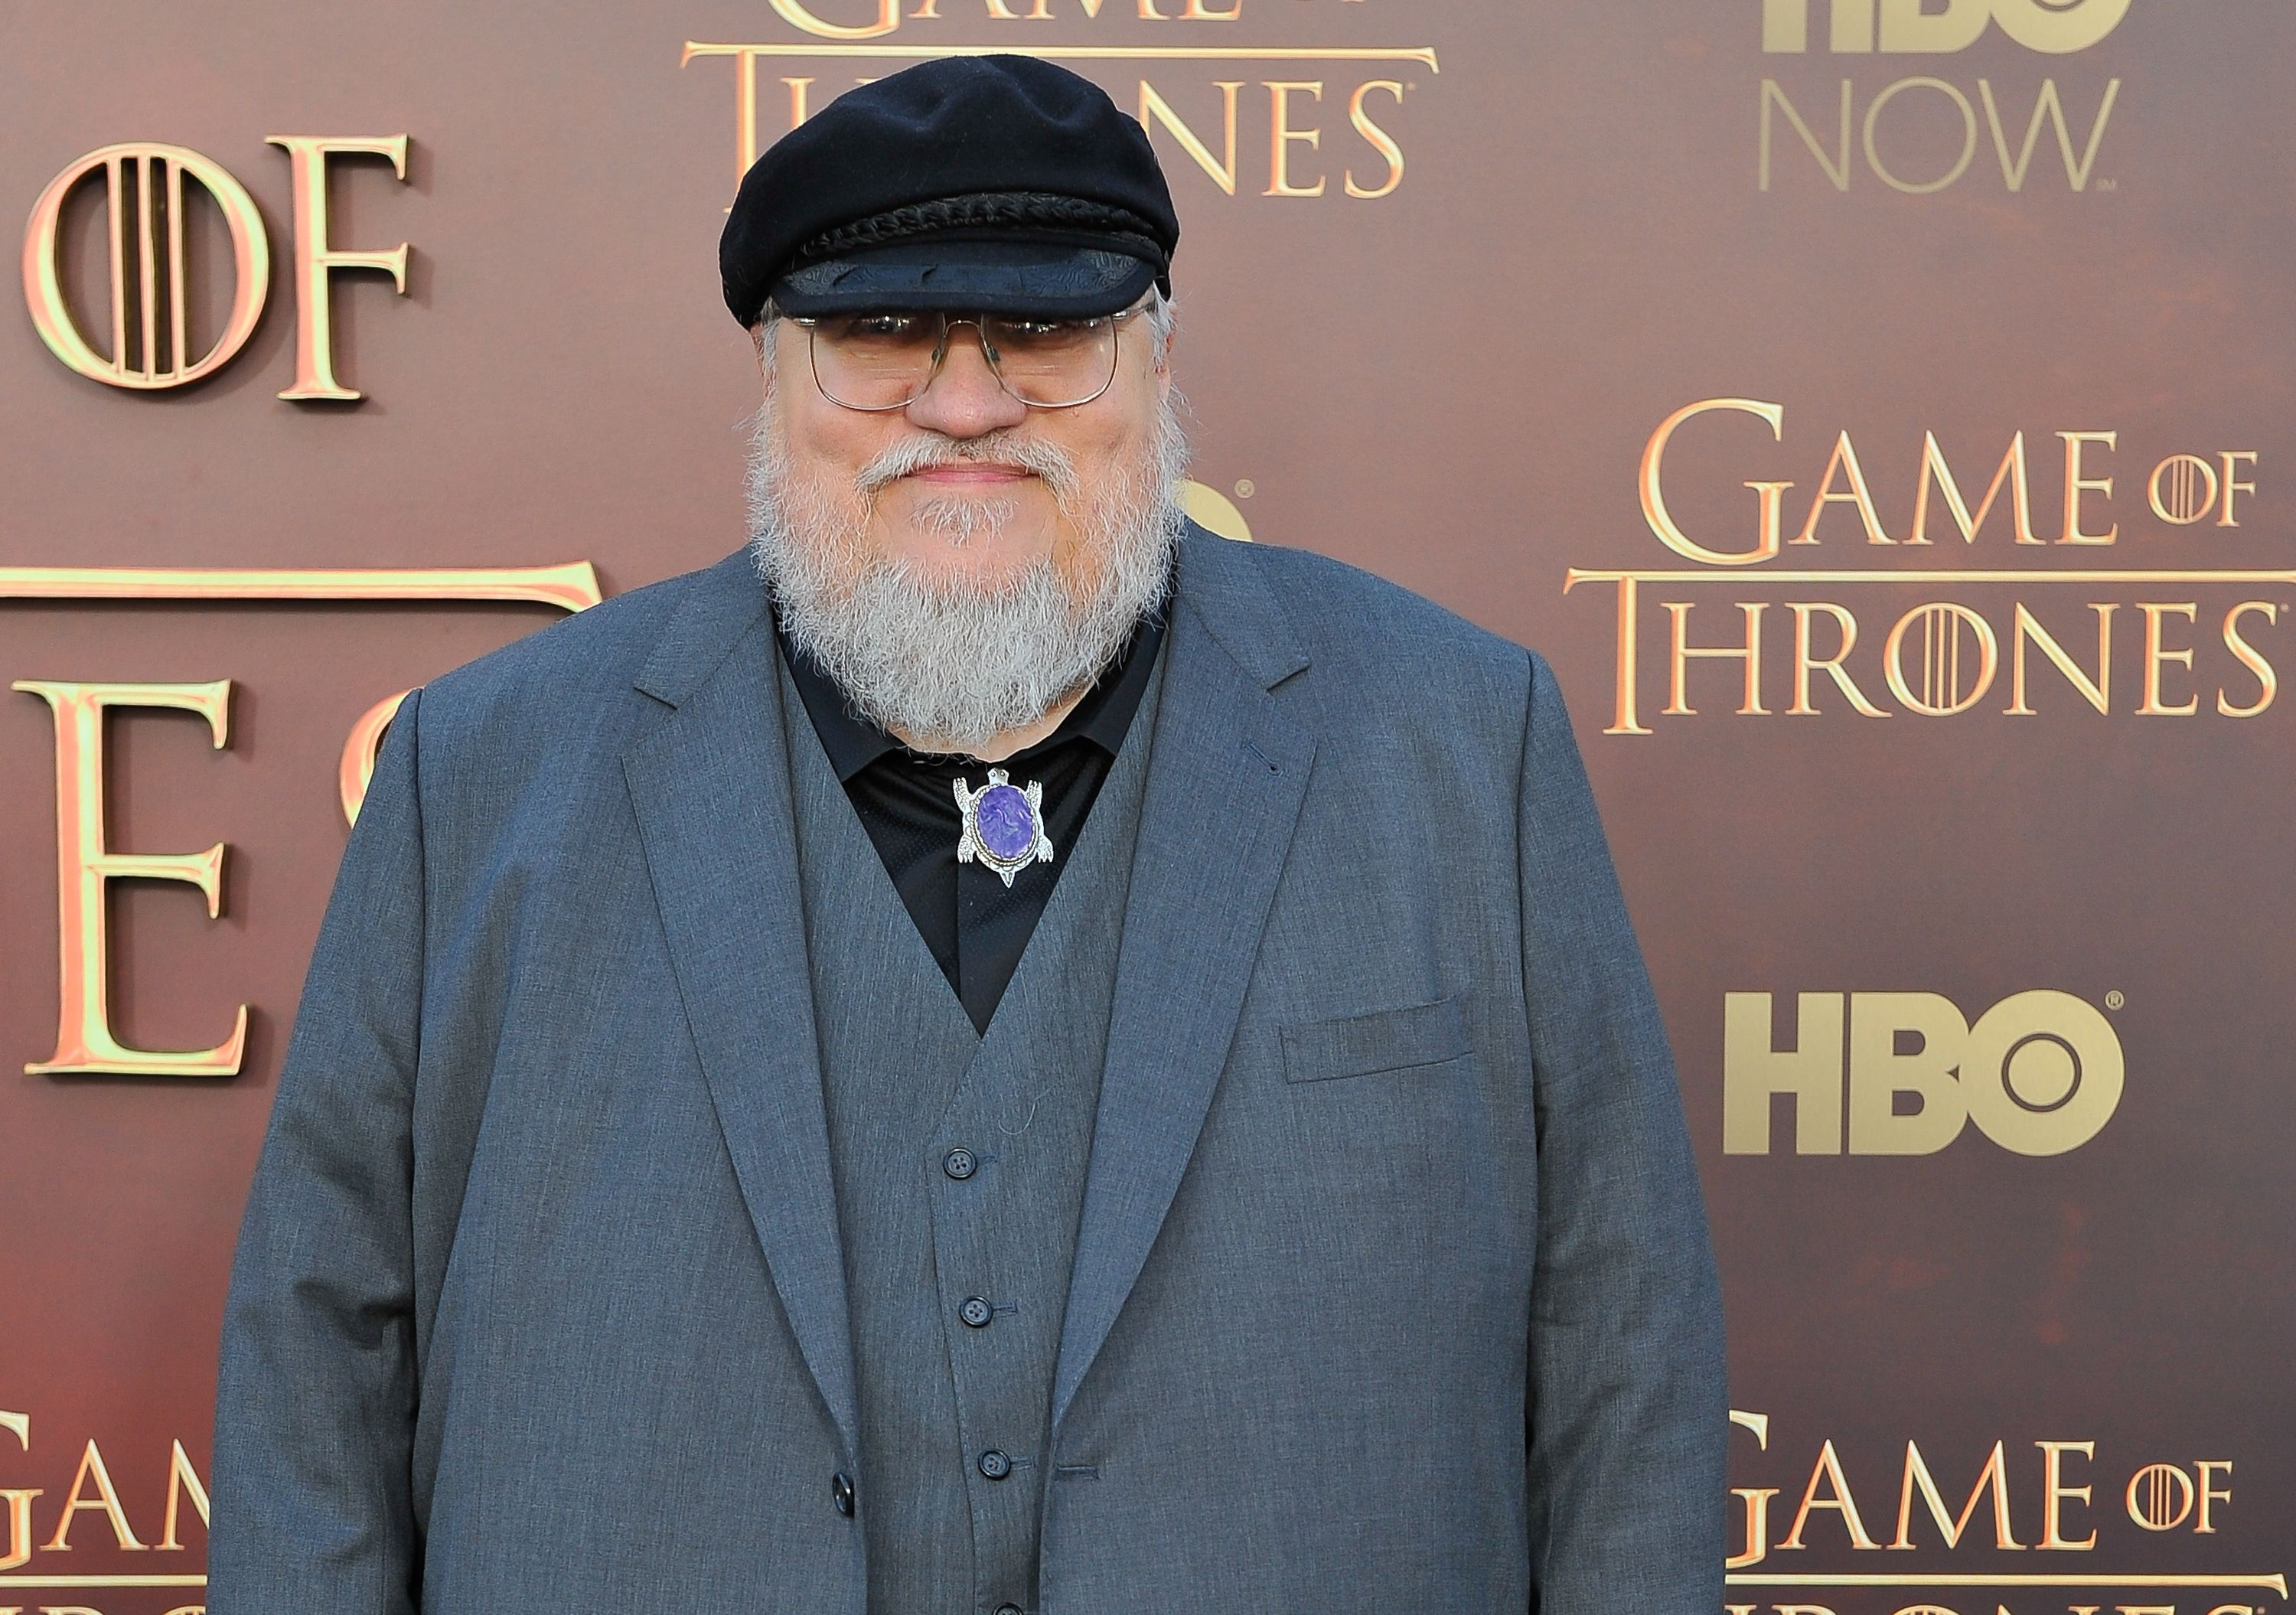 Game of Thrones Author George R.R. Martin Says the Show's Ending Won't Change His Books